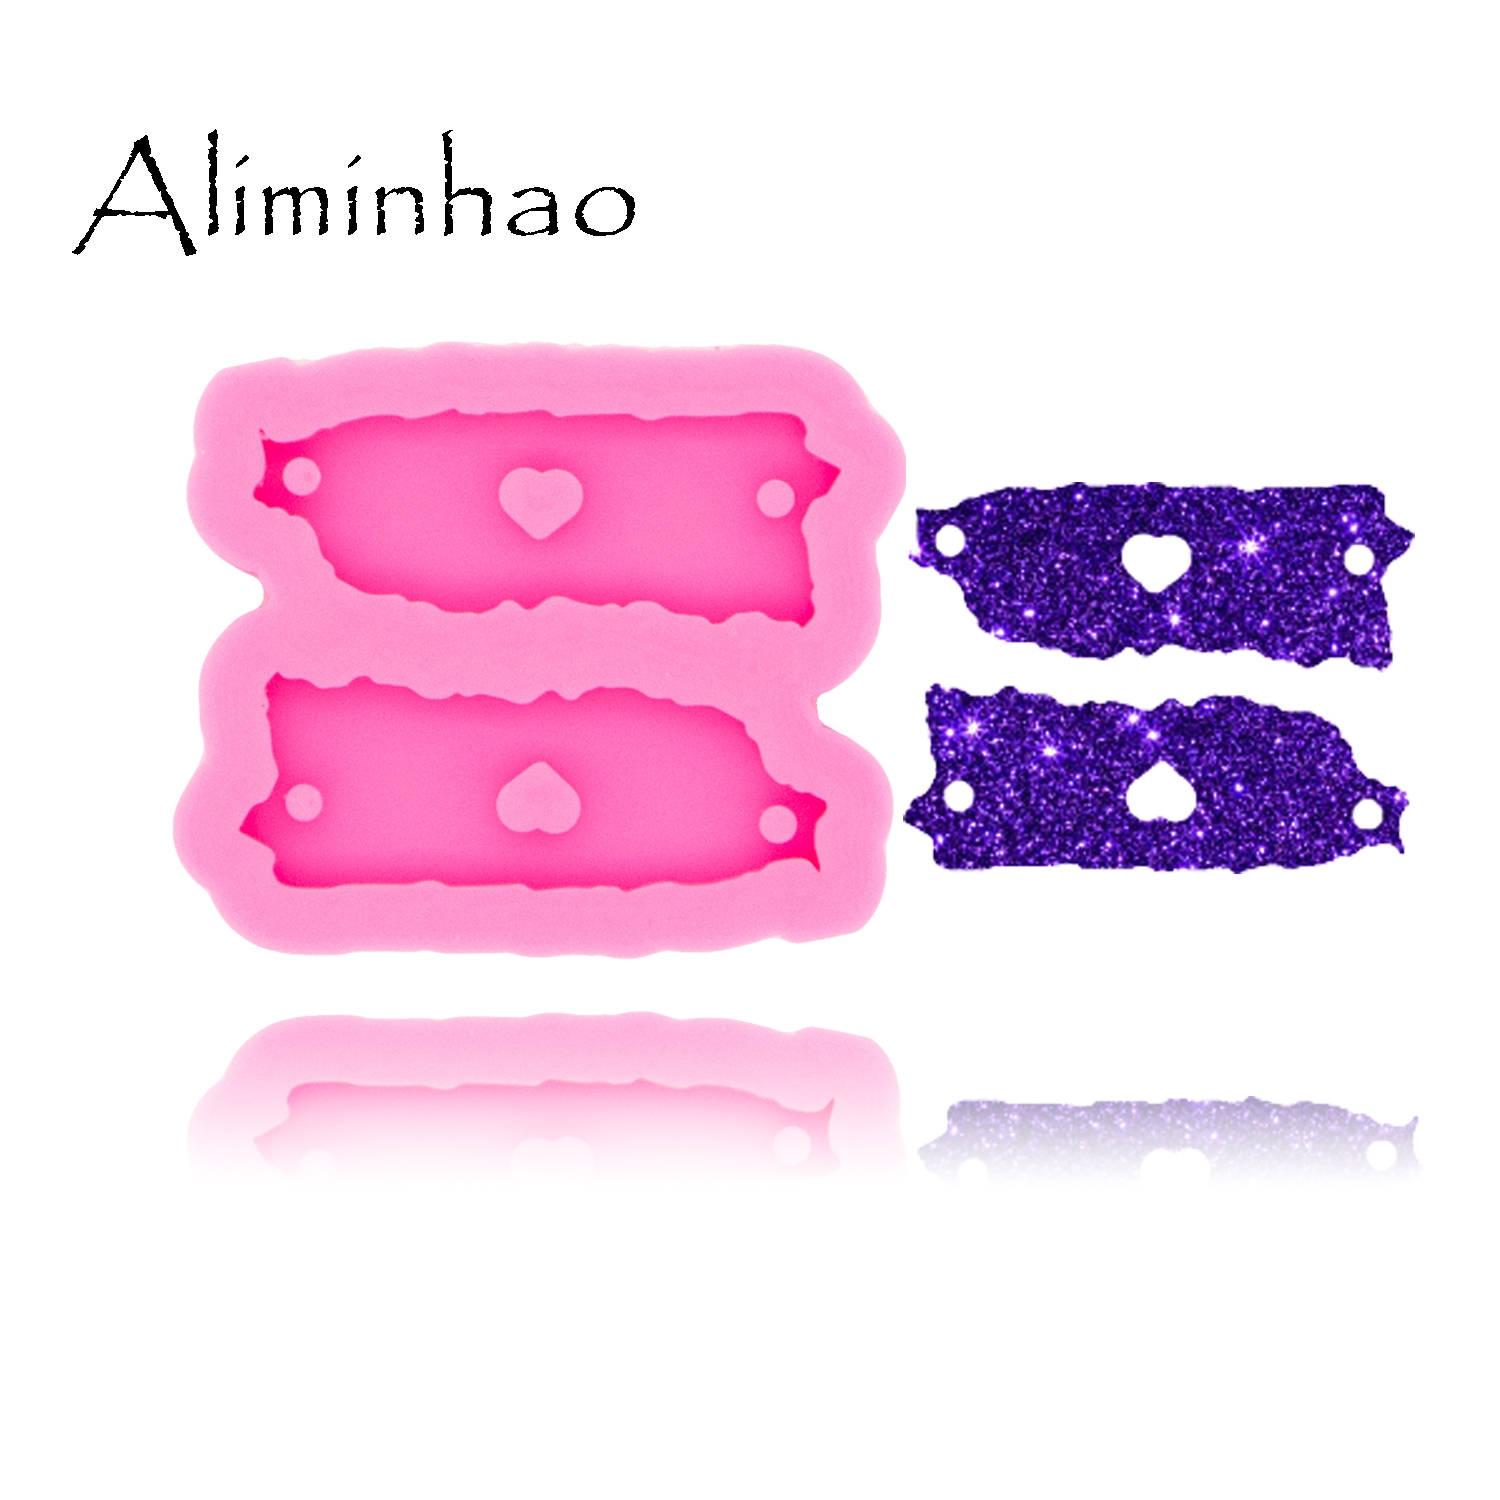 DY0452 Shiny Puerto Rico Map Handmade DIY Epoxy Silicone Molds Fashion Jewelry Resin Craft Mould Making Bracelet